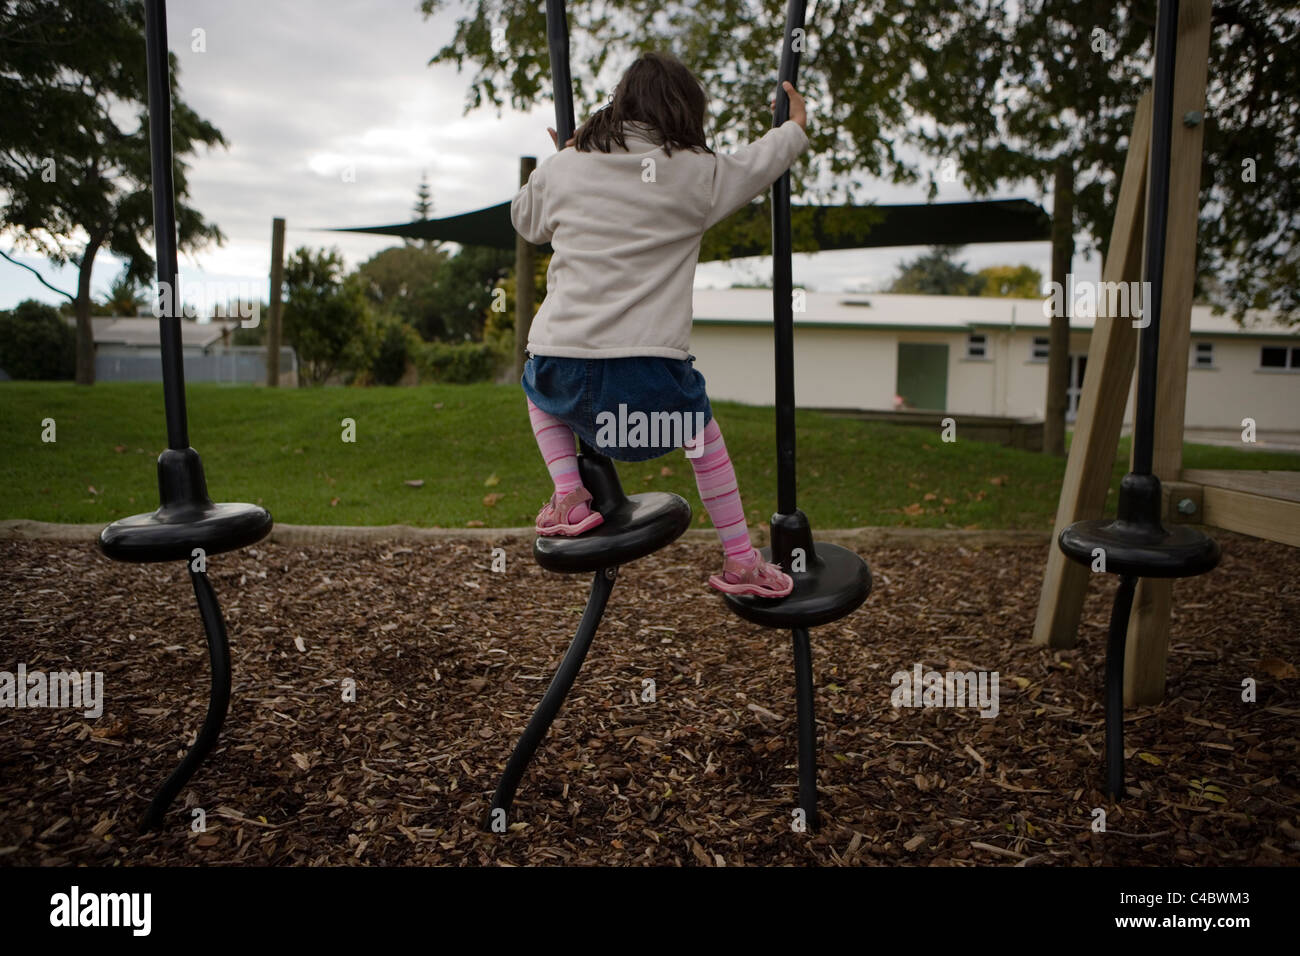 Adventure playground at local school, Palmerston North, New Zealand. Stock Photo